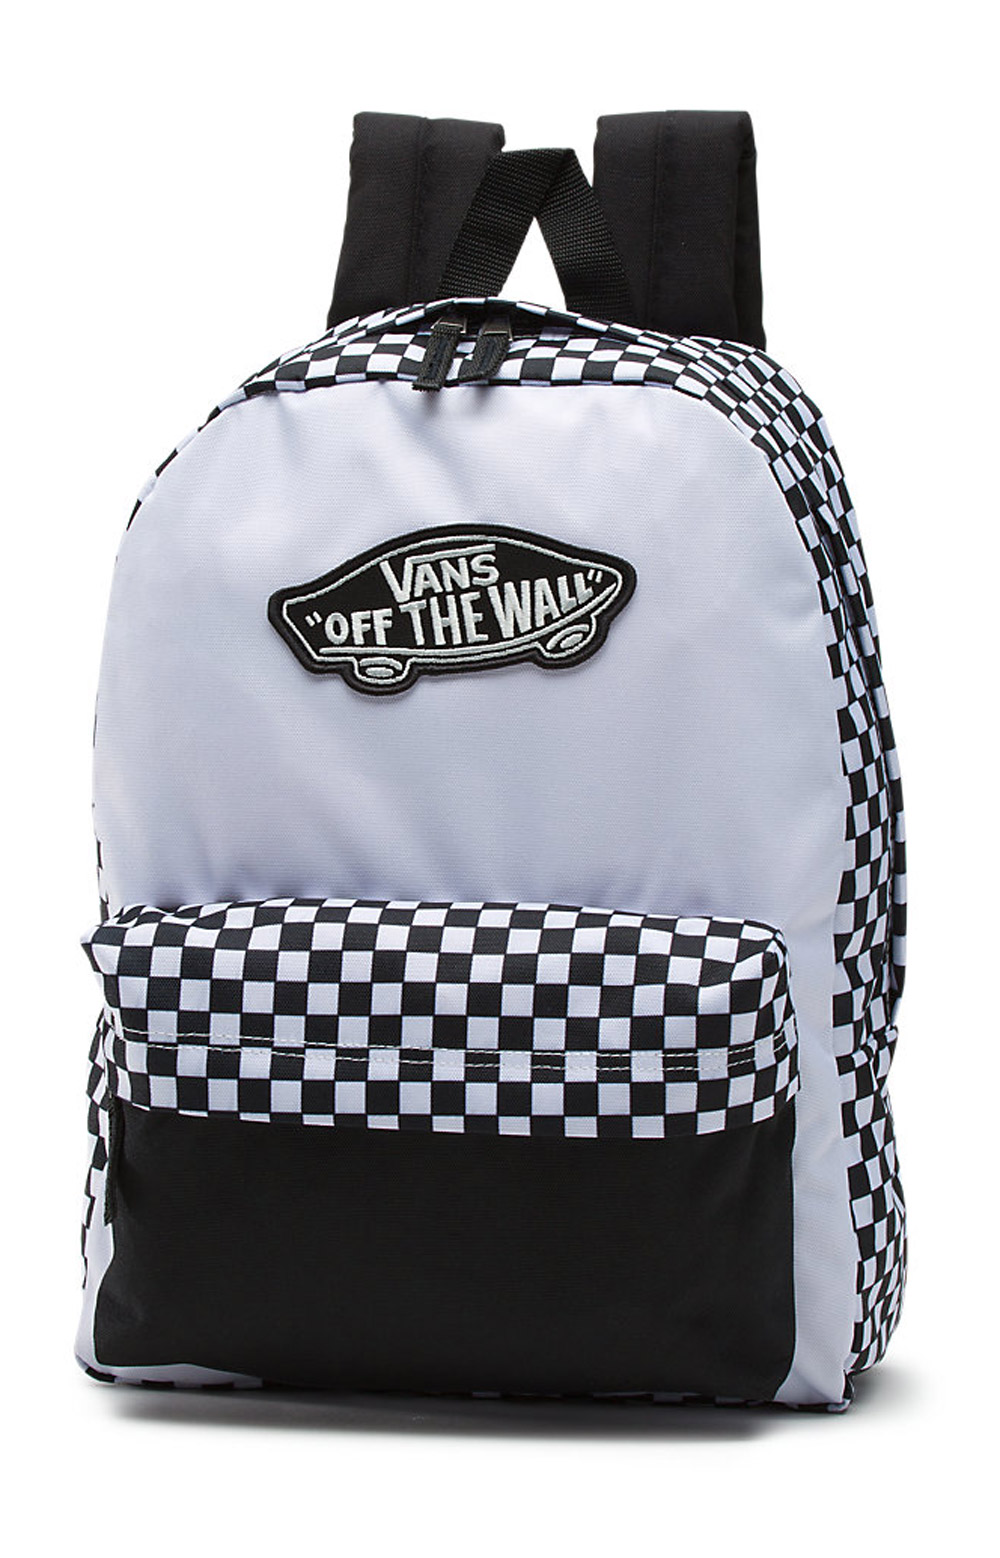 be07a09d0b1 Vans Women's, Realm Backpack - Black/White Checkerboard | MLTD